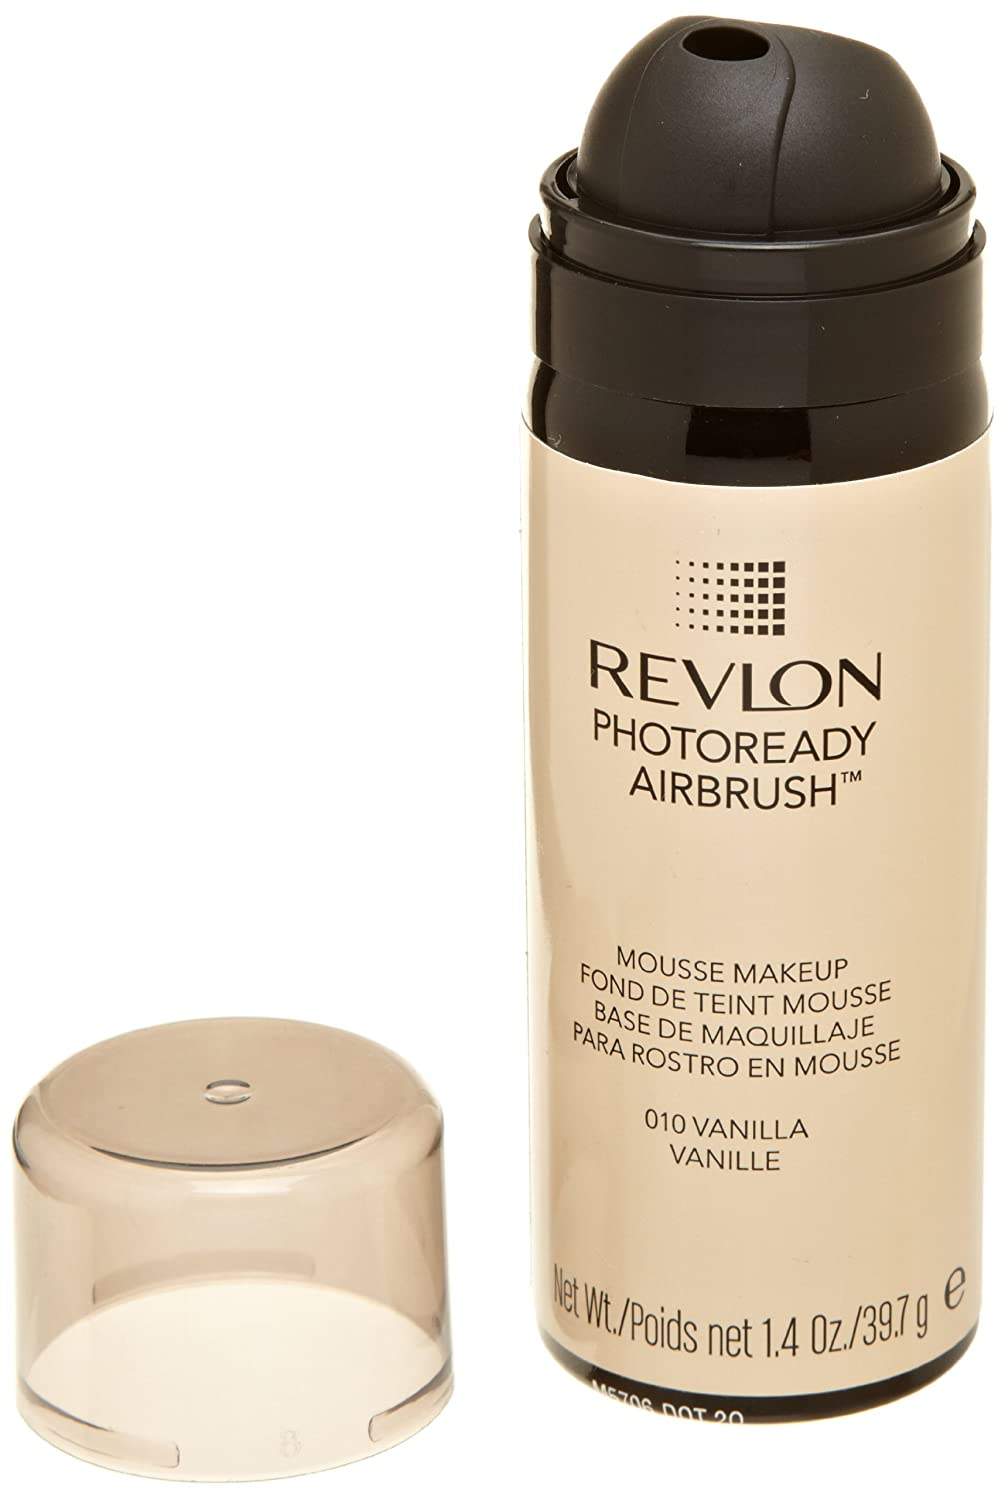 Revlon - Photoready Airbrush - Maquillage Mousse - 030 Chair